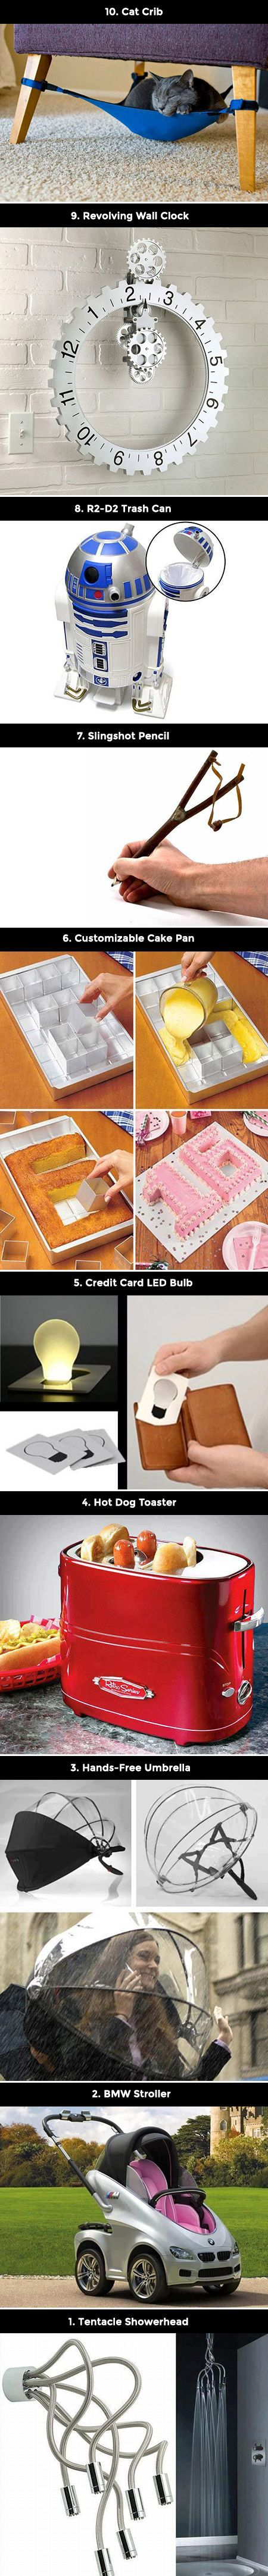 Here are 10 innovative product ideas that you will not believe actually exist.